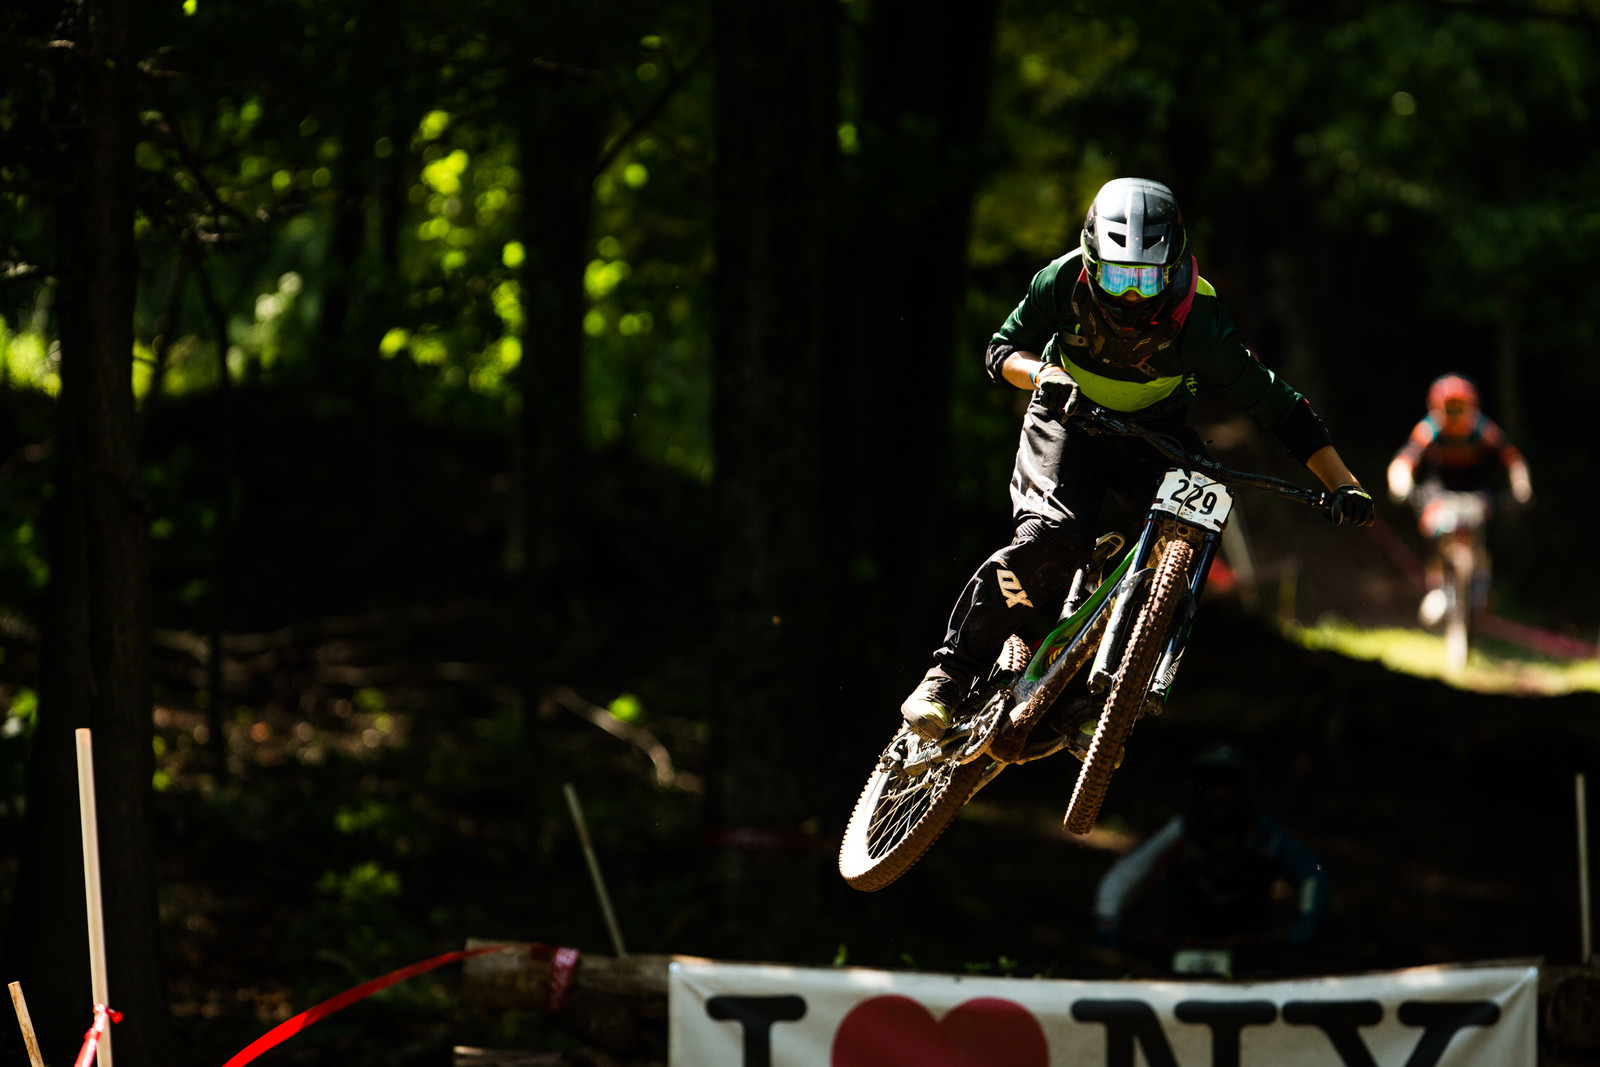 Cat 2 and 3 Racers - RACE DAY GALLERY - 2017 Pro GRT, Windham, NY - Mountain Biking Pictures - Vital MTB